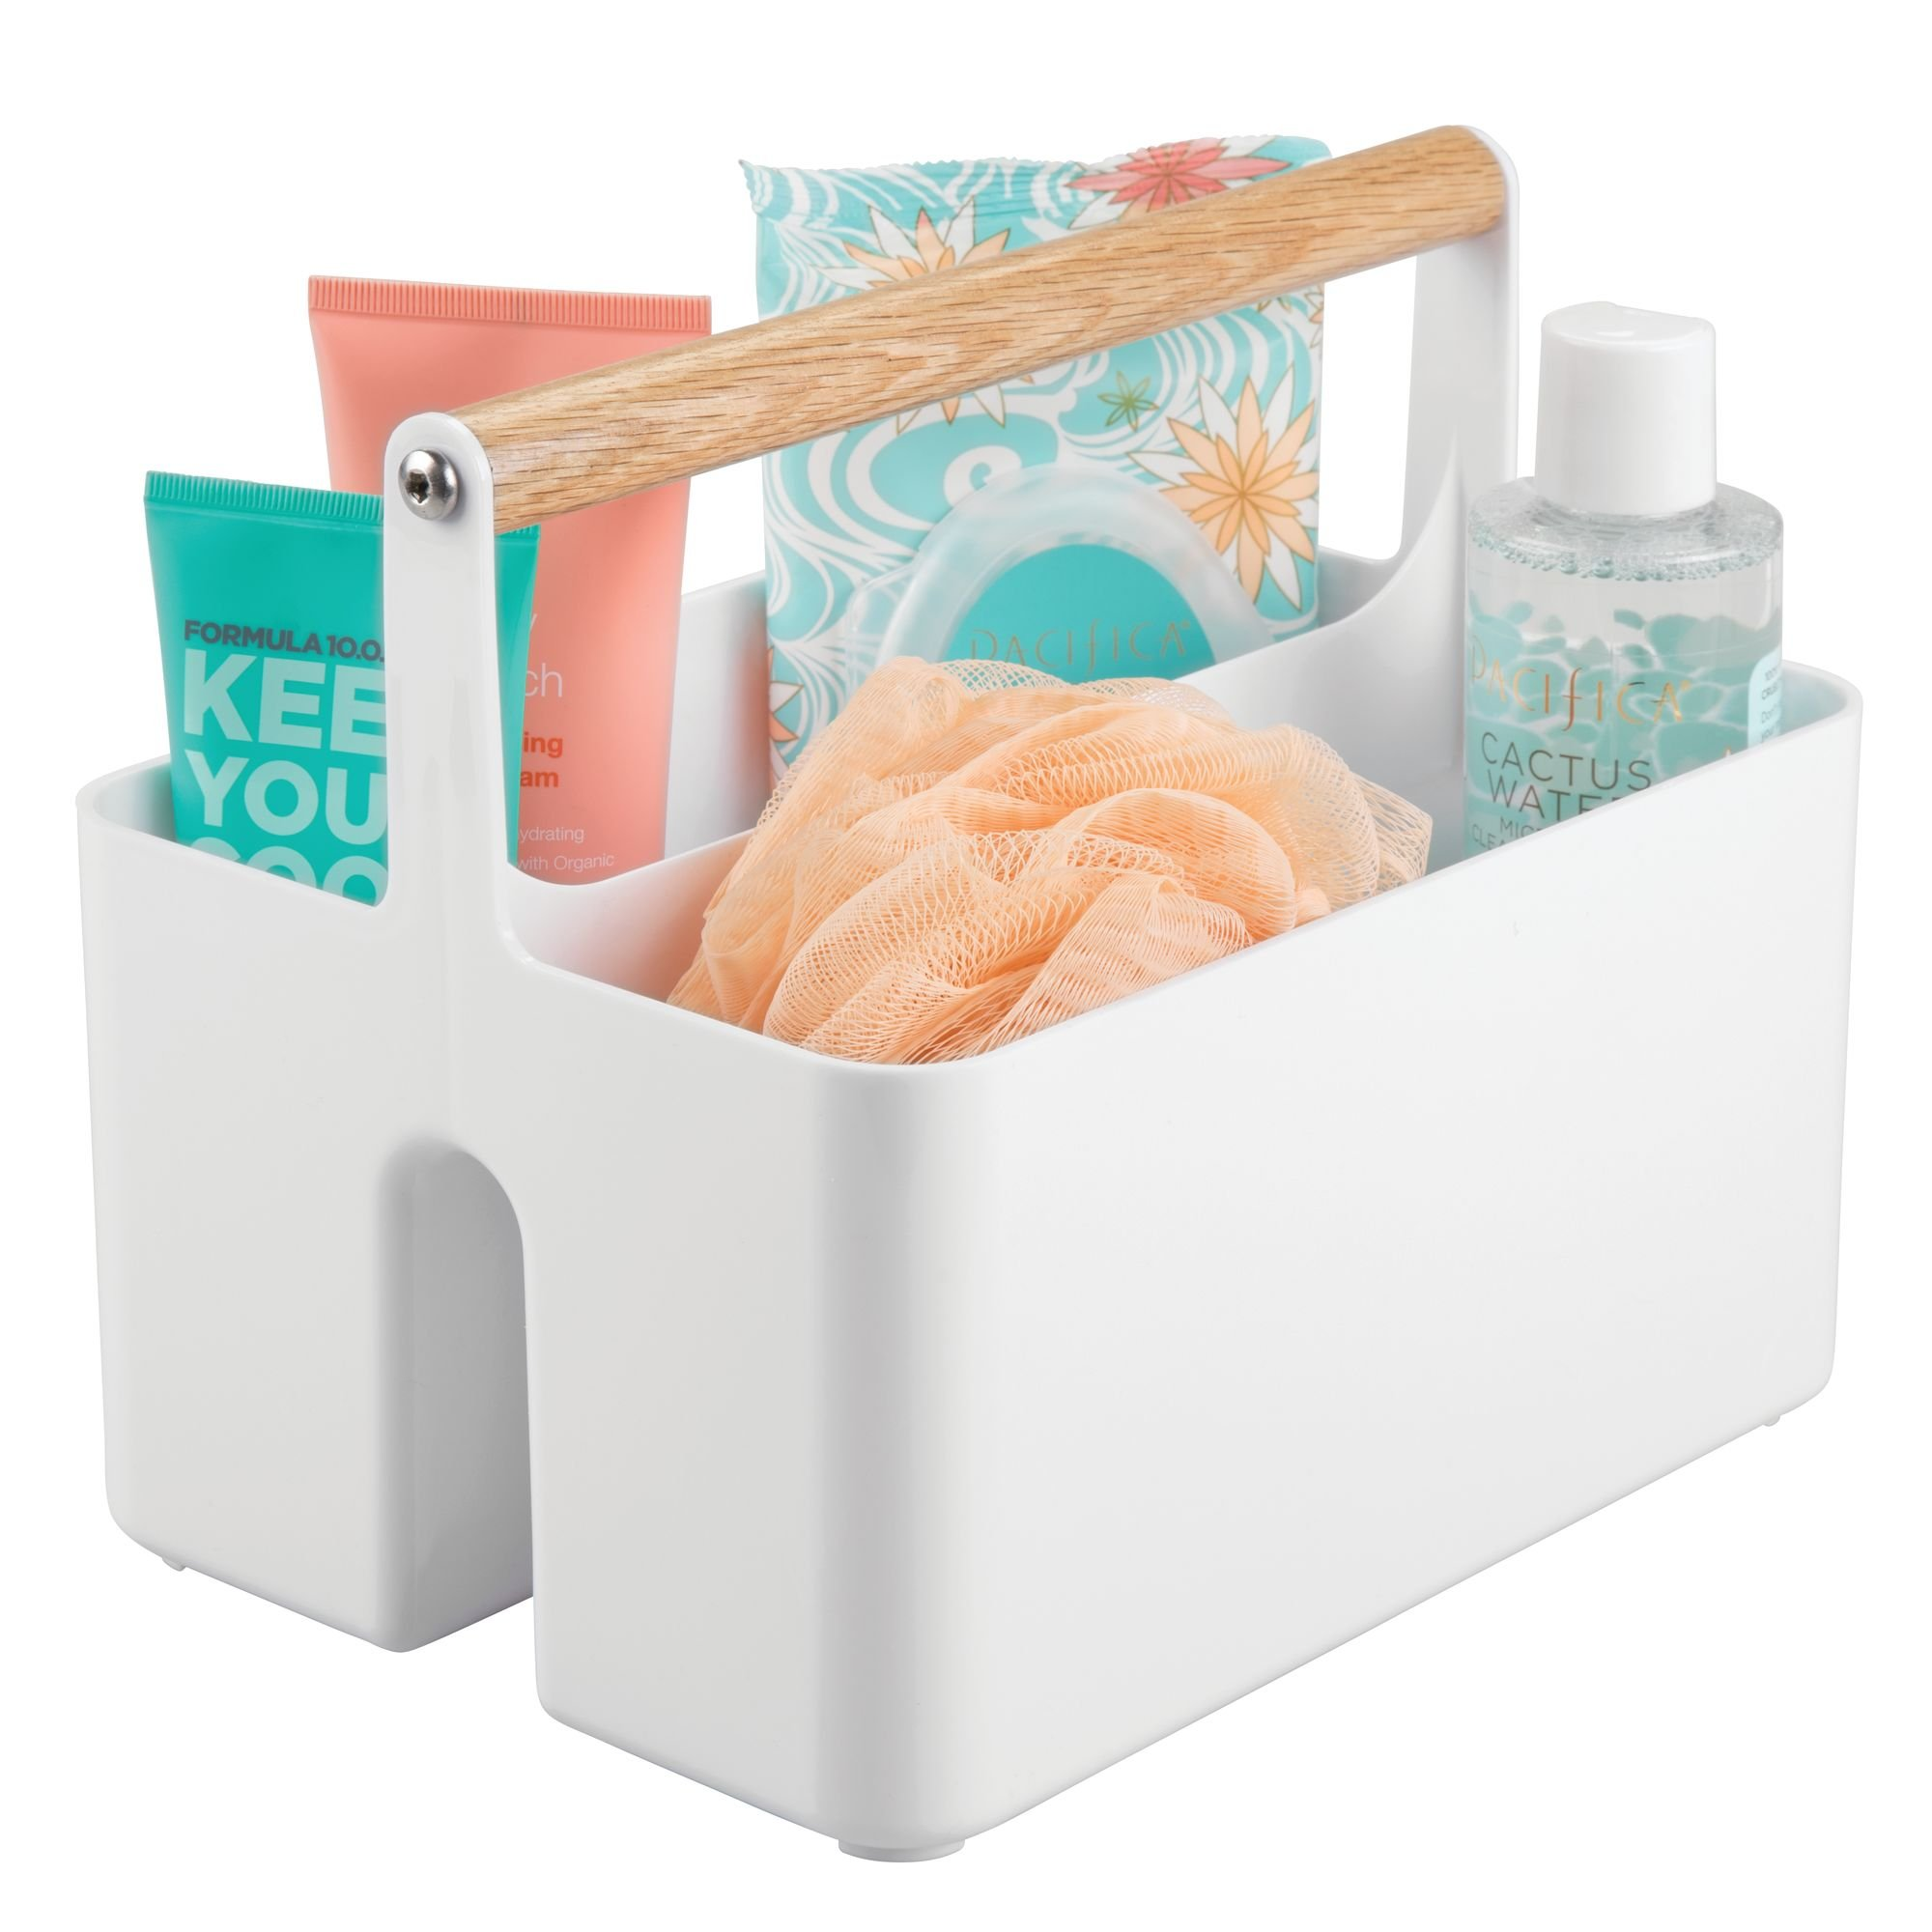 mDesign Bathroom Storage Organizer Caddy Tote, Portable Divided Basket Bin with Natural Wood Handle - BPA Free, 2 Sections for Holding Hand Soap, Body Wash, Shampoo, Conditioner, Lotion - White